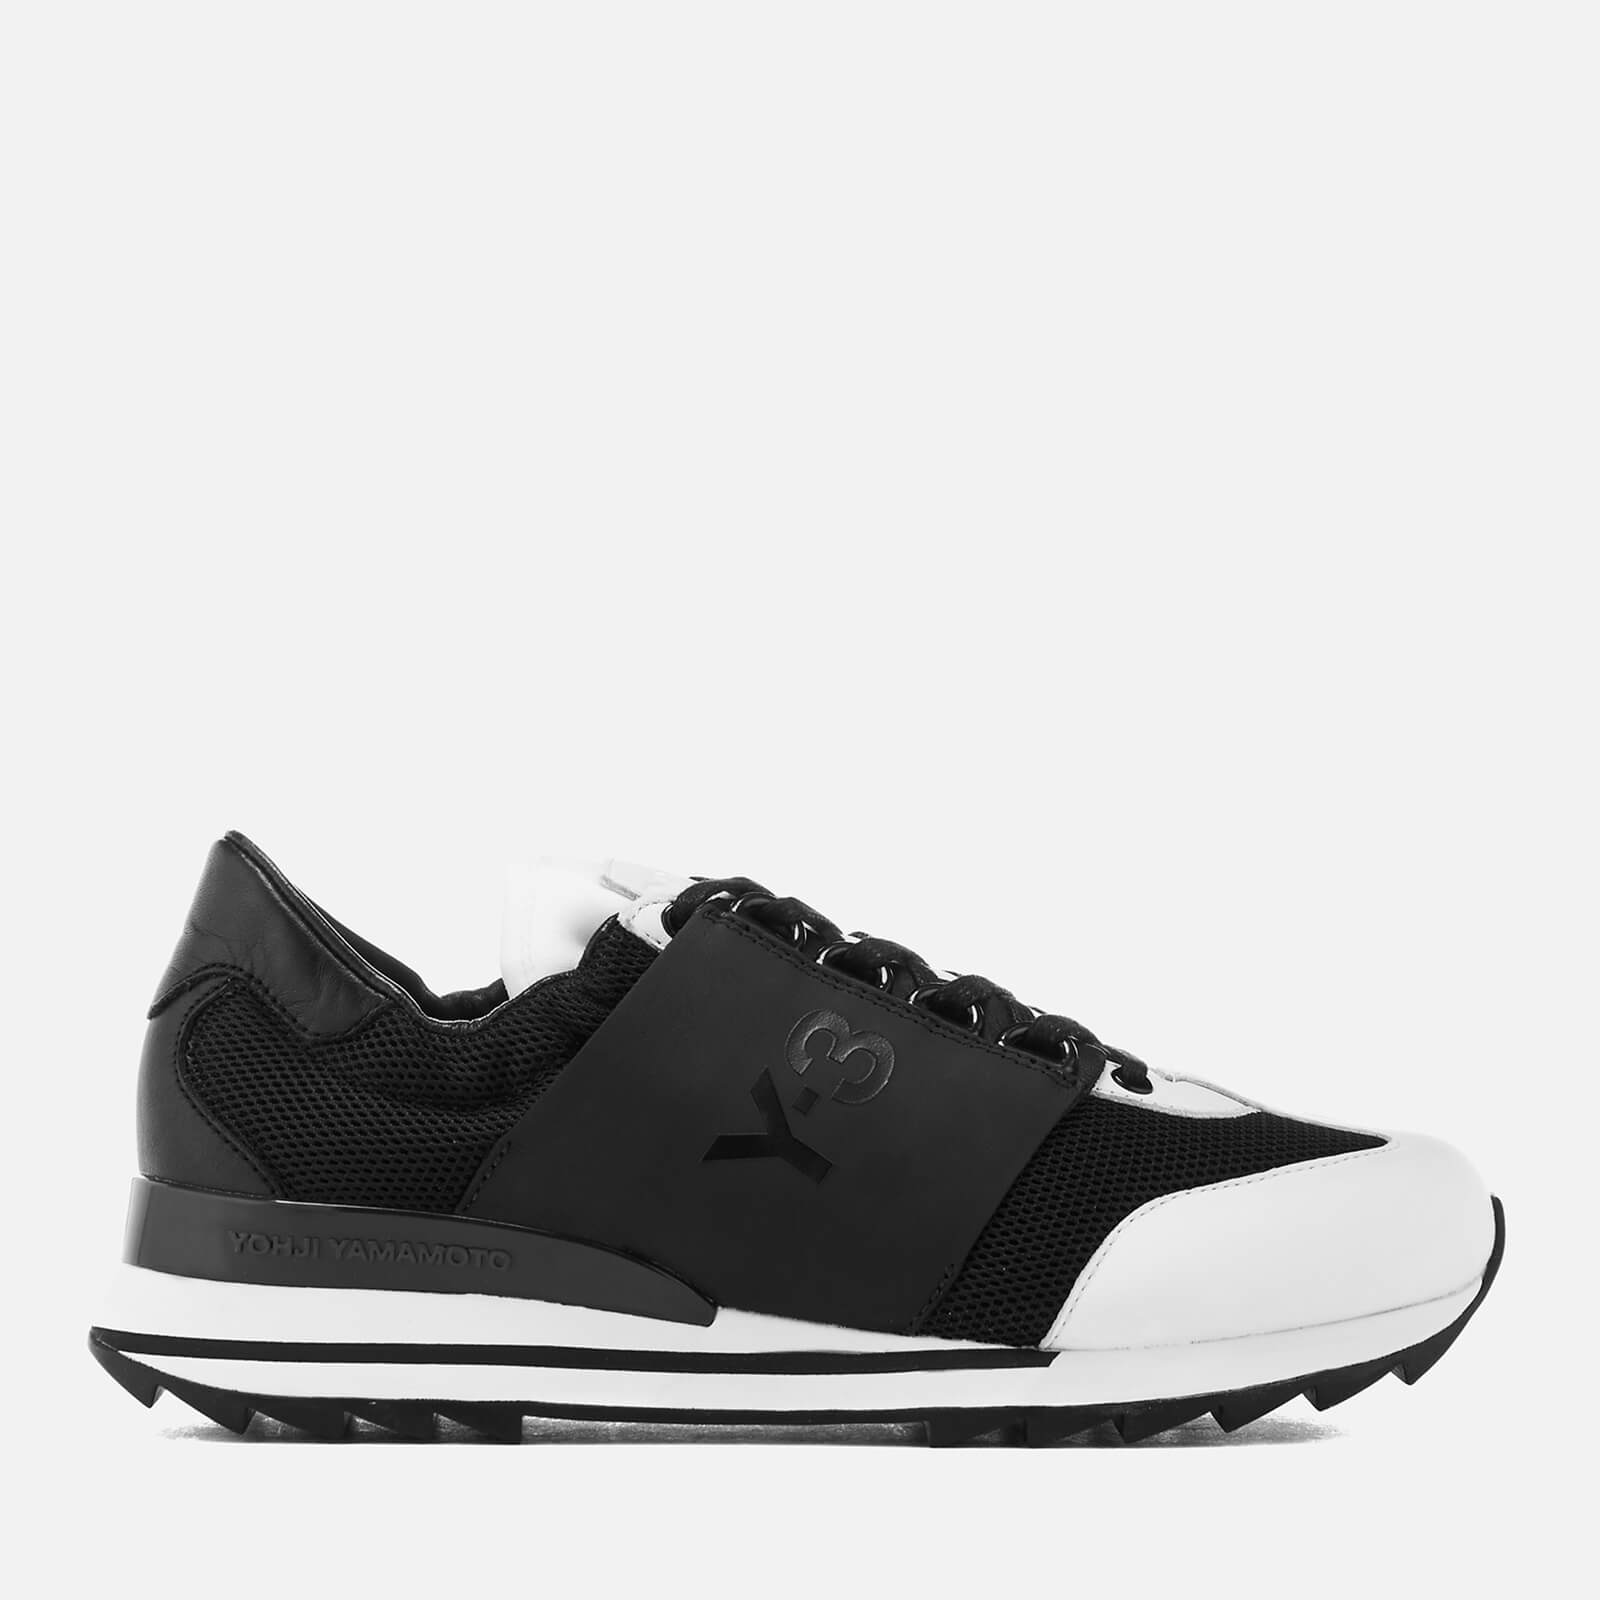 9f728aa6801b6 Y-3 Women s Rhita Sport Sneakers - Core Black Footwear White - Free ...